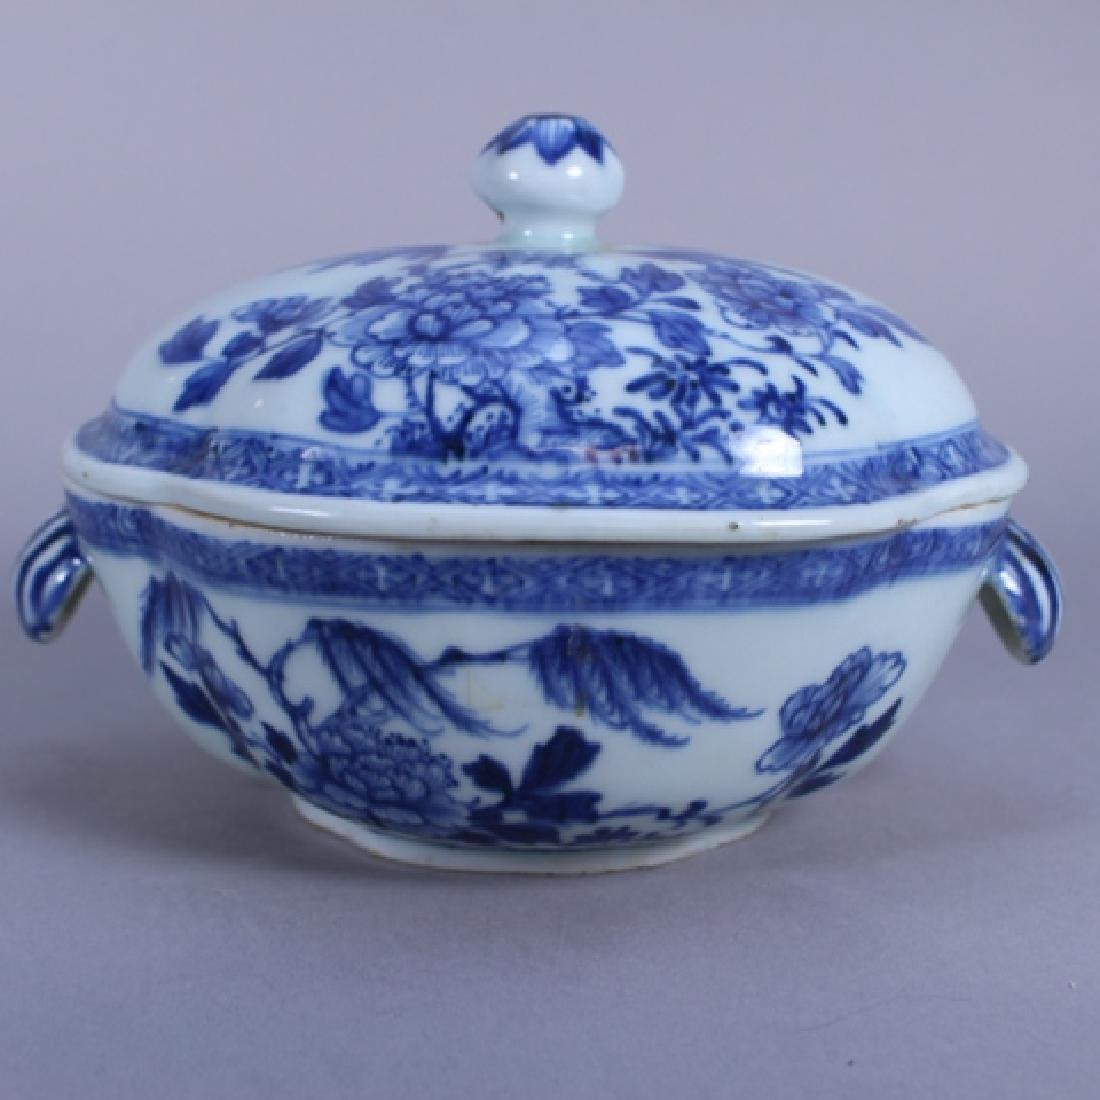 18th C. Chinese Porcelain Covered Bowl & Tray - 3